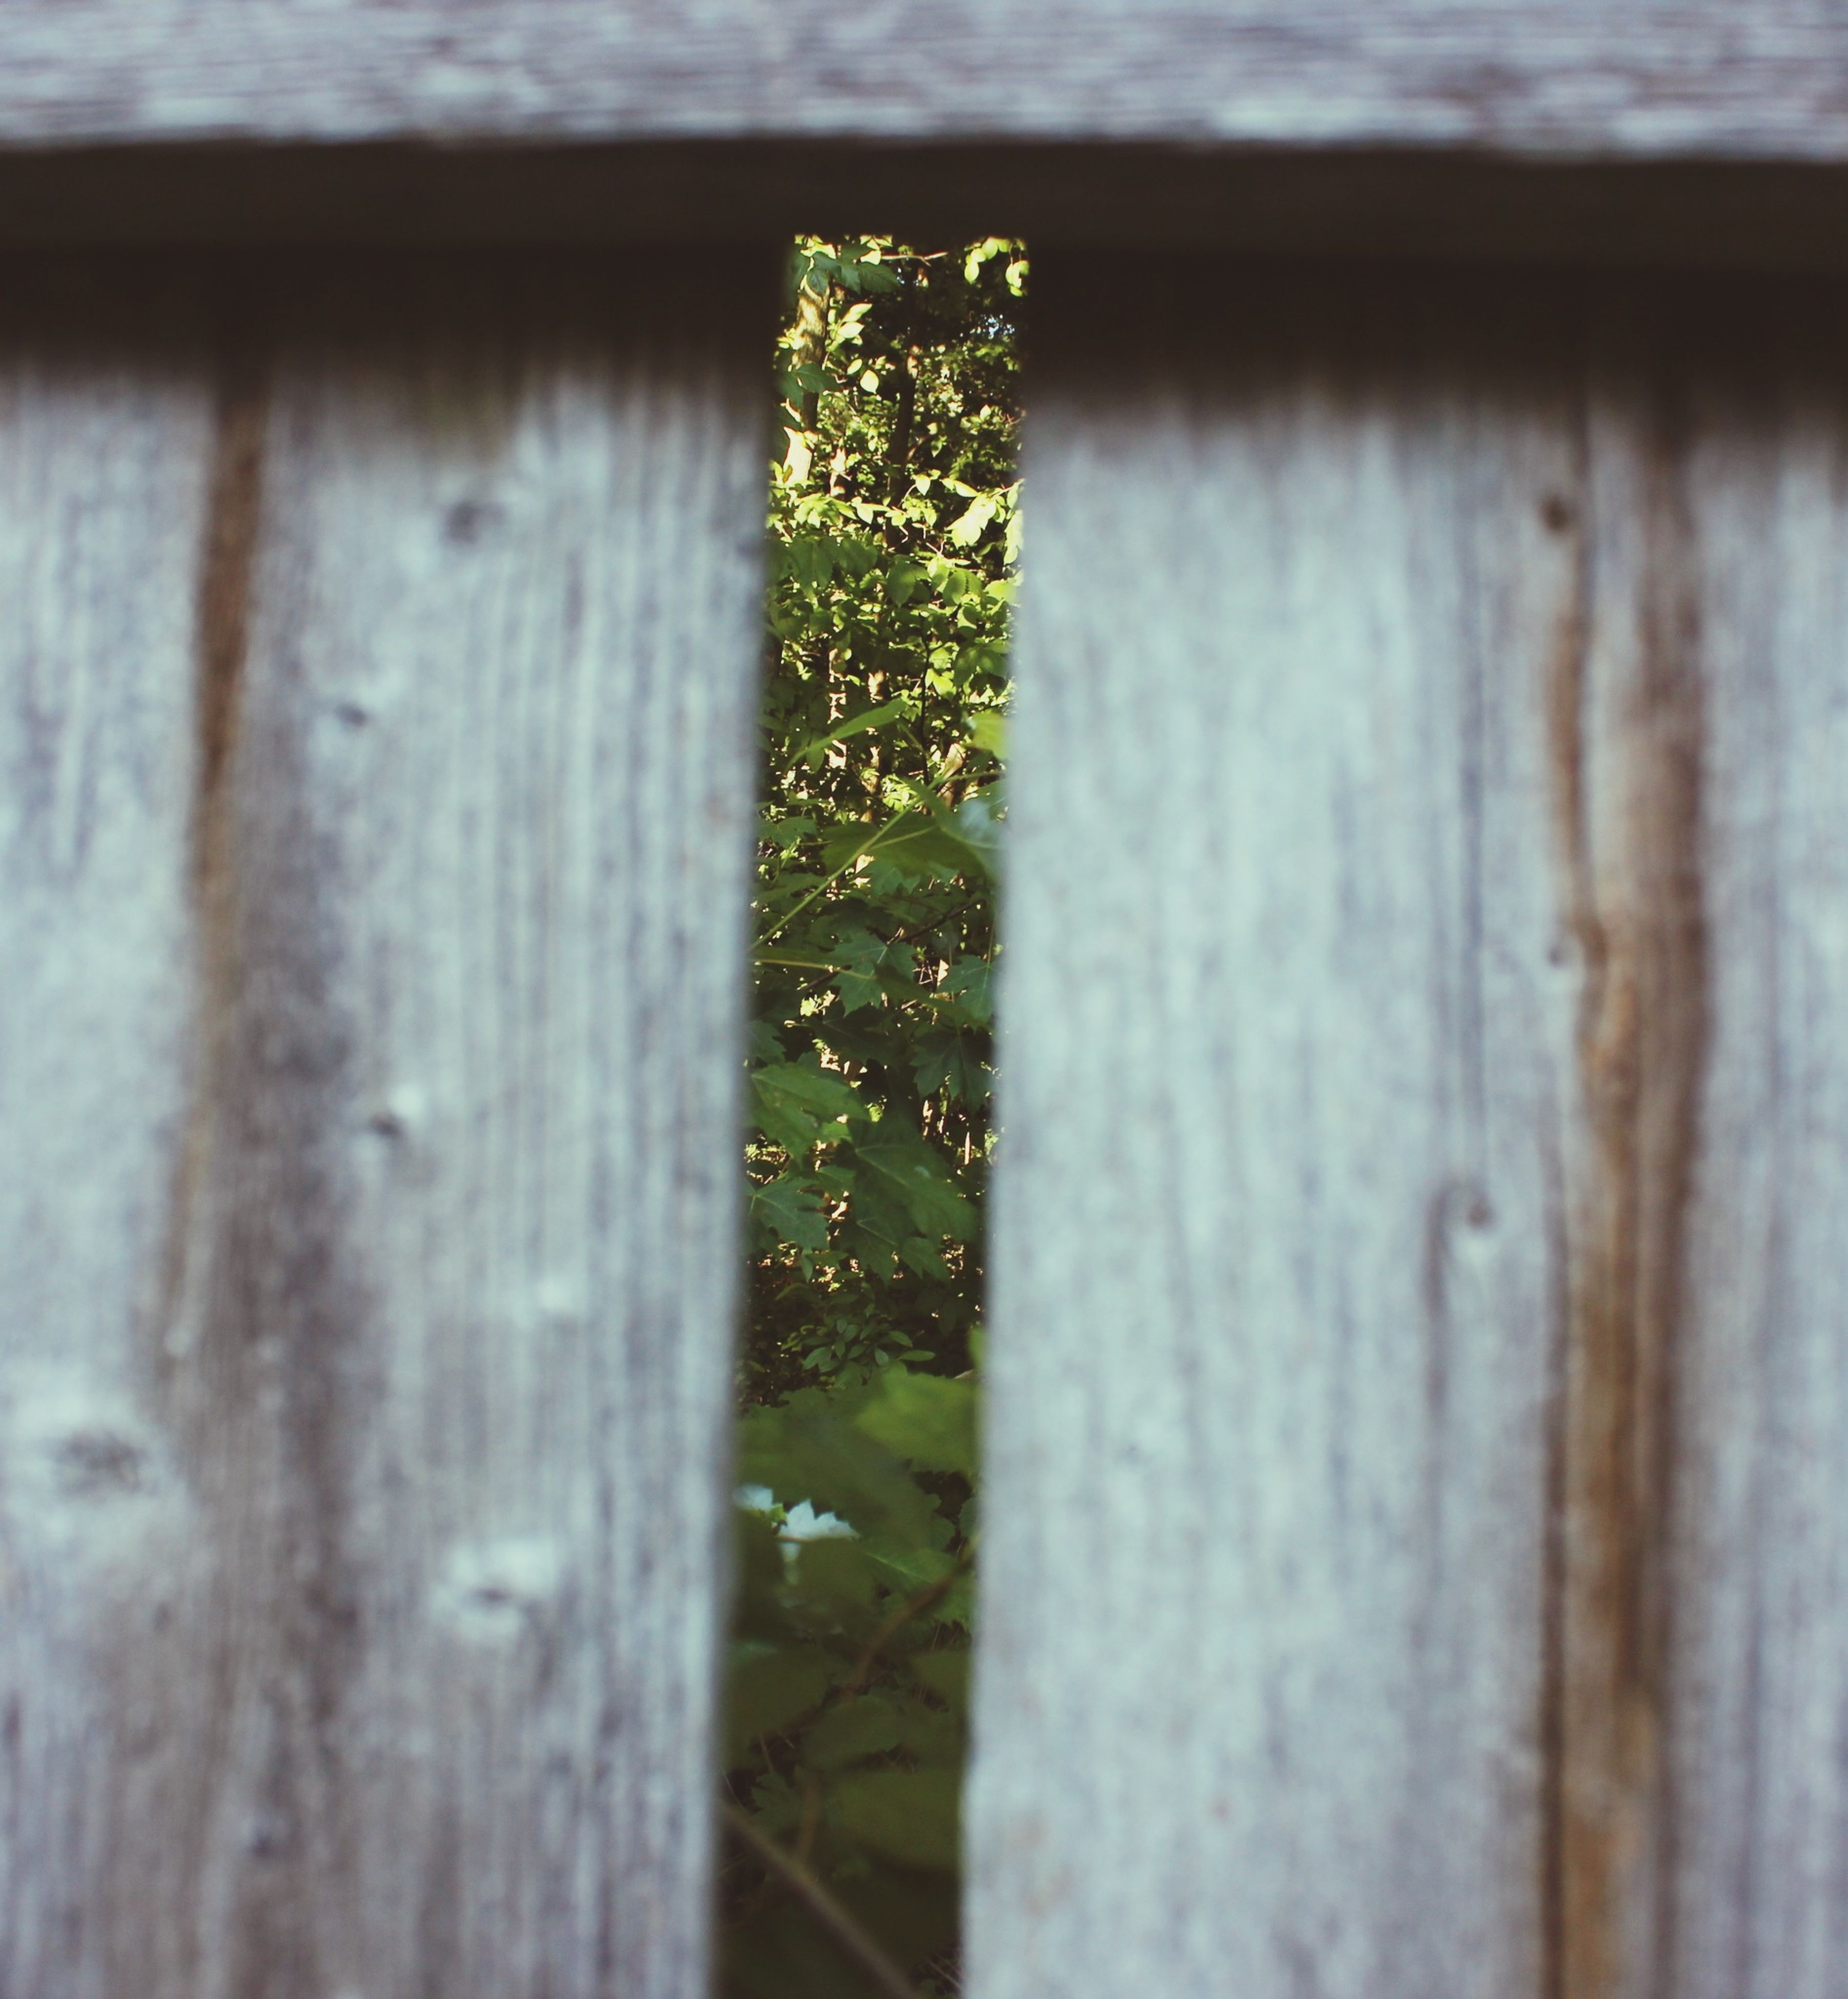 wood - material, built structure, wooden, architecture, building exterior, close-up, growth, house, focus on foreground, selective focus, door, day, green color, outdoors, plant, window, closed, wood, weathered, fence